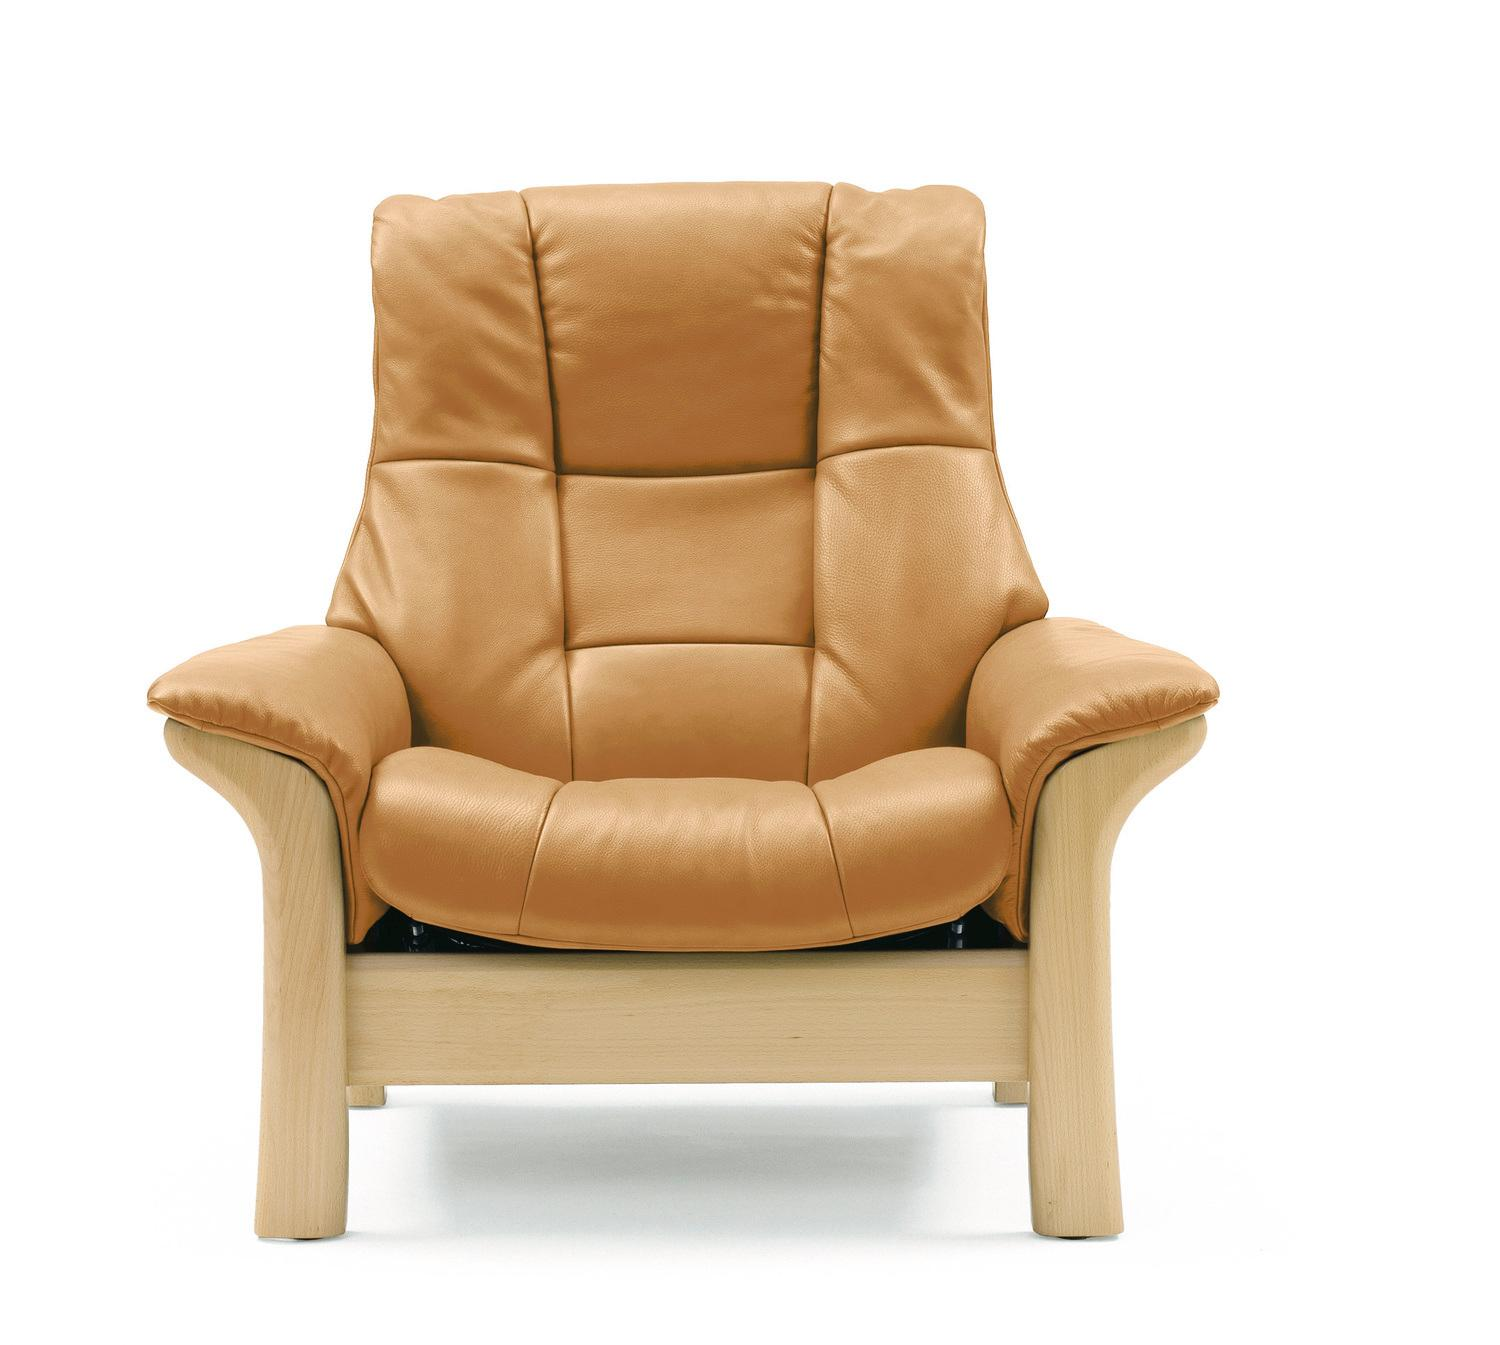 Stressless By EkornesStressless Buckingham Chair High-Back